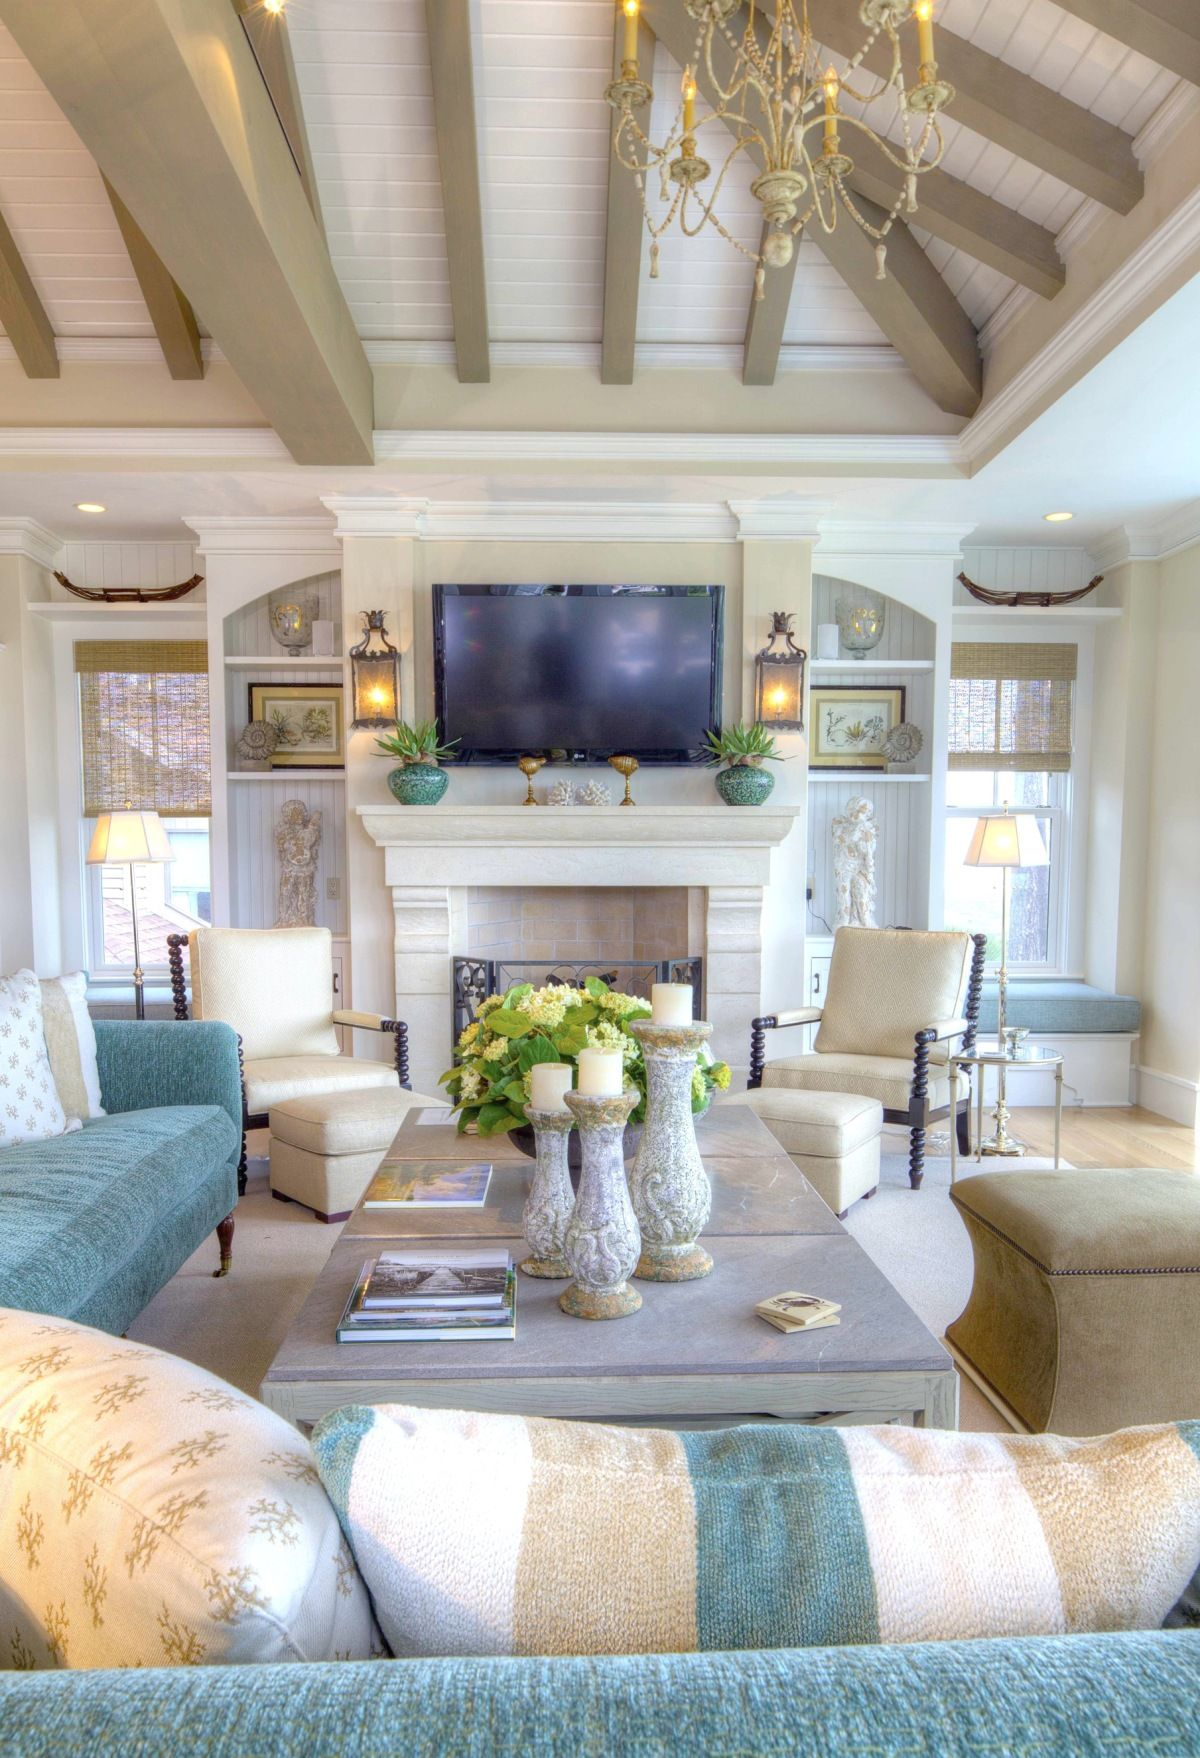 How To Install Faux Wood Beams Beam Me Up Scottie Chic B